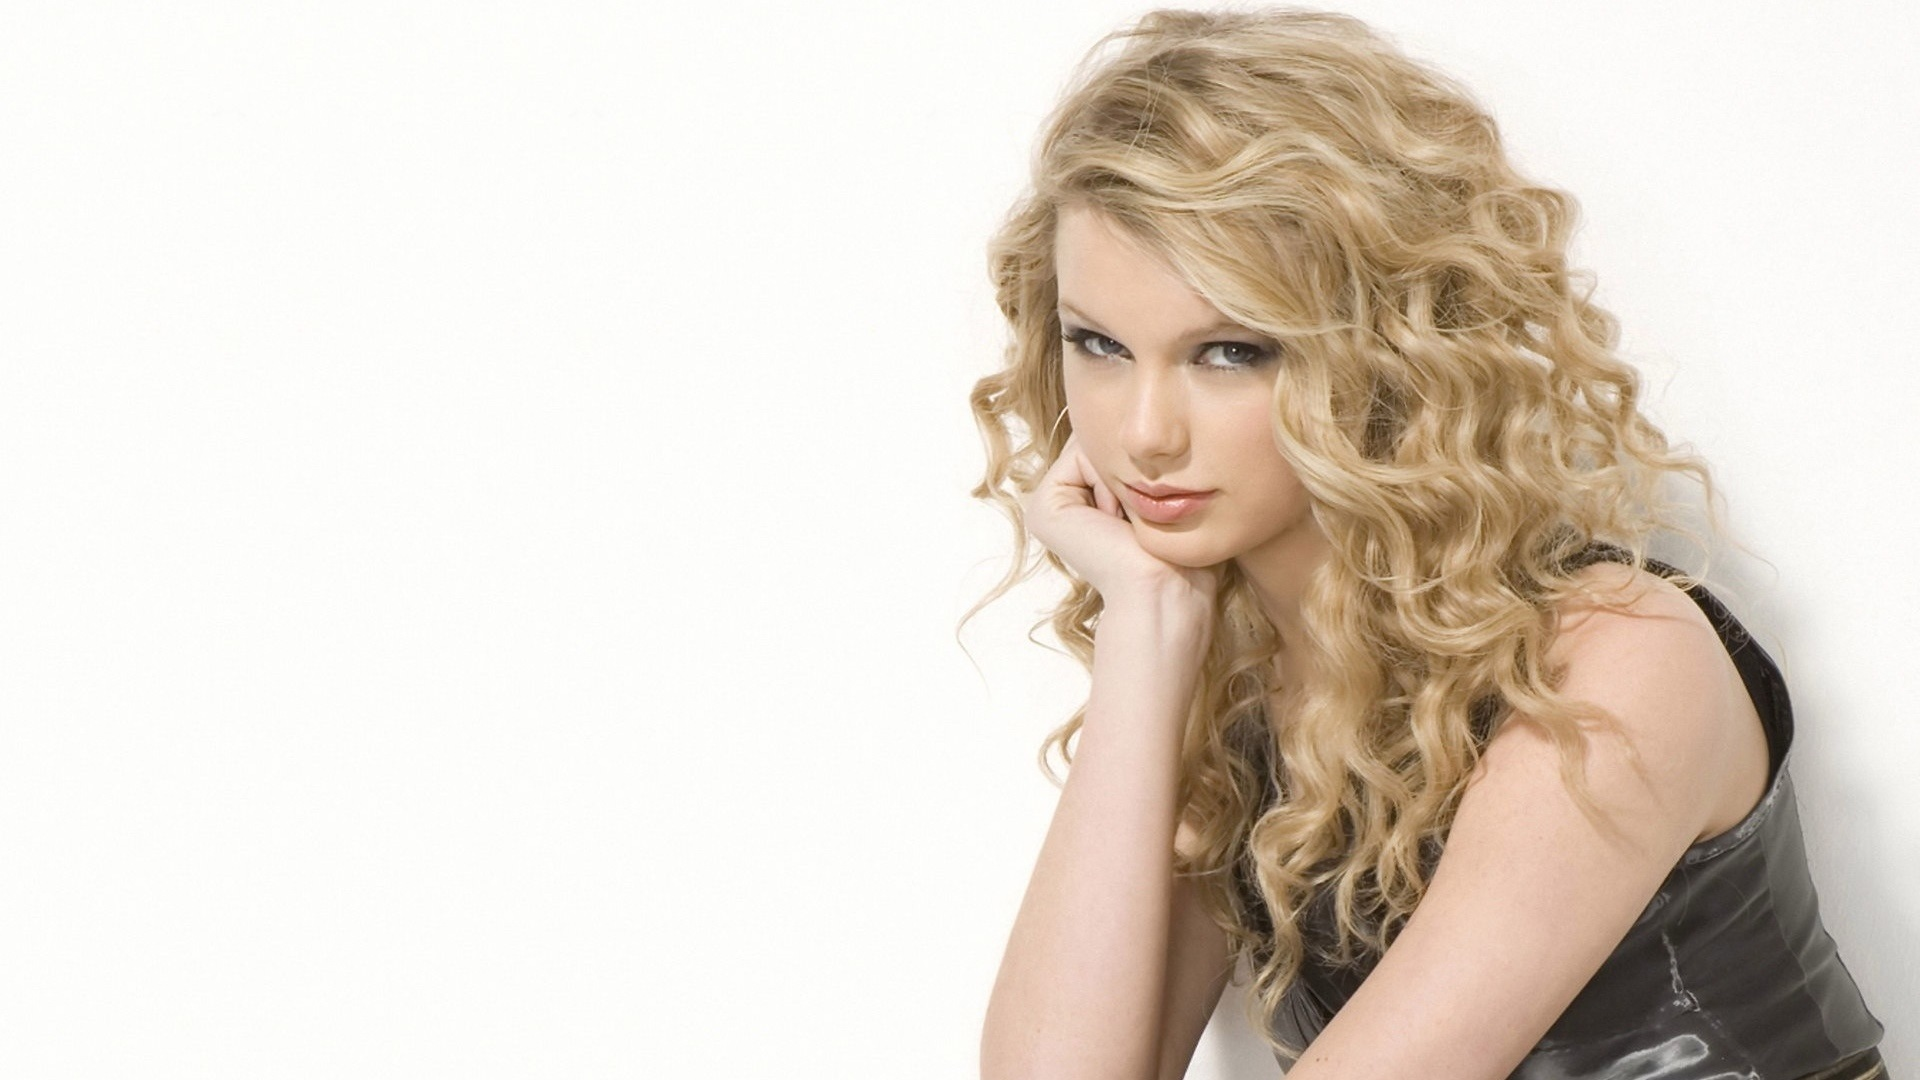 Wallpaper Taylor Swift 58 1920x1080 Full Hd 2k Picture Image